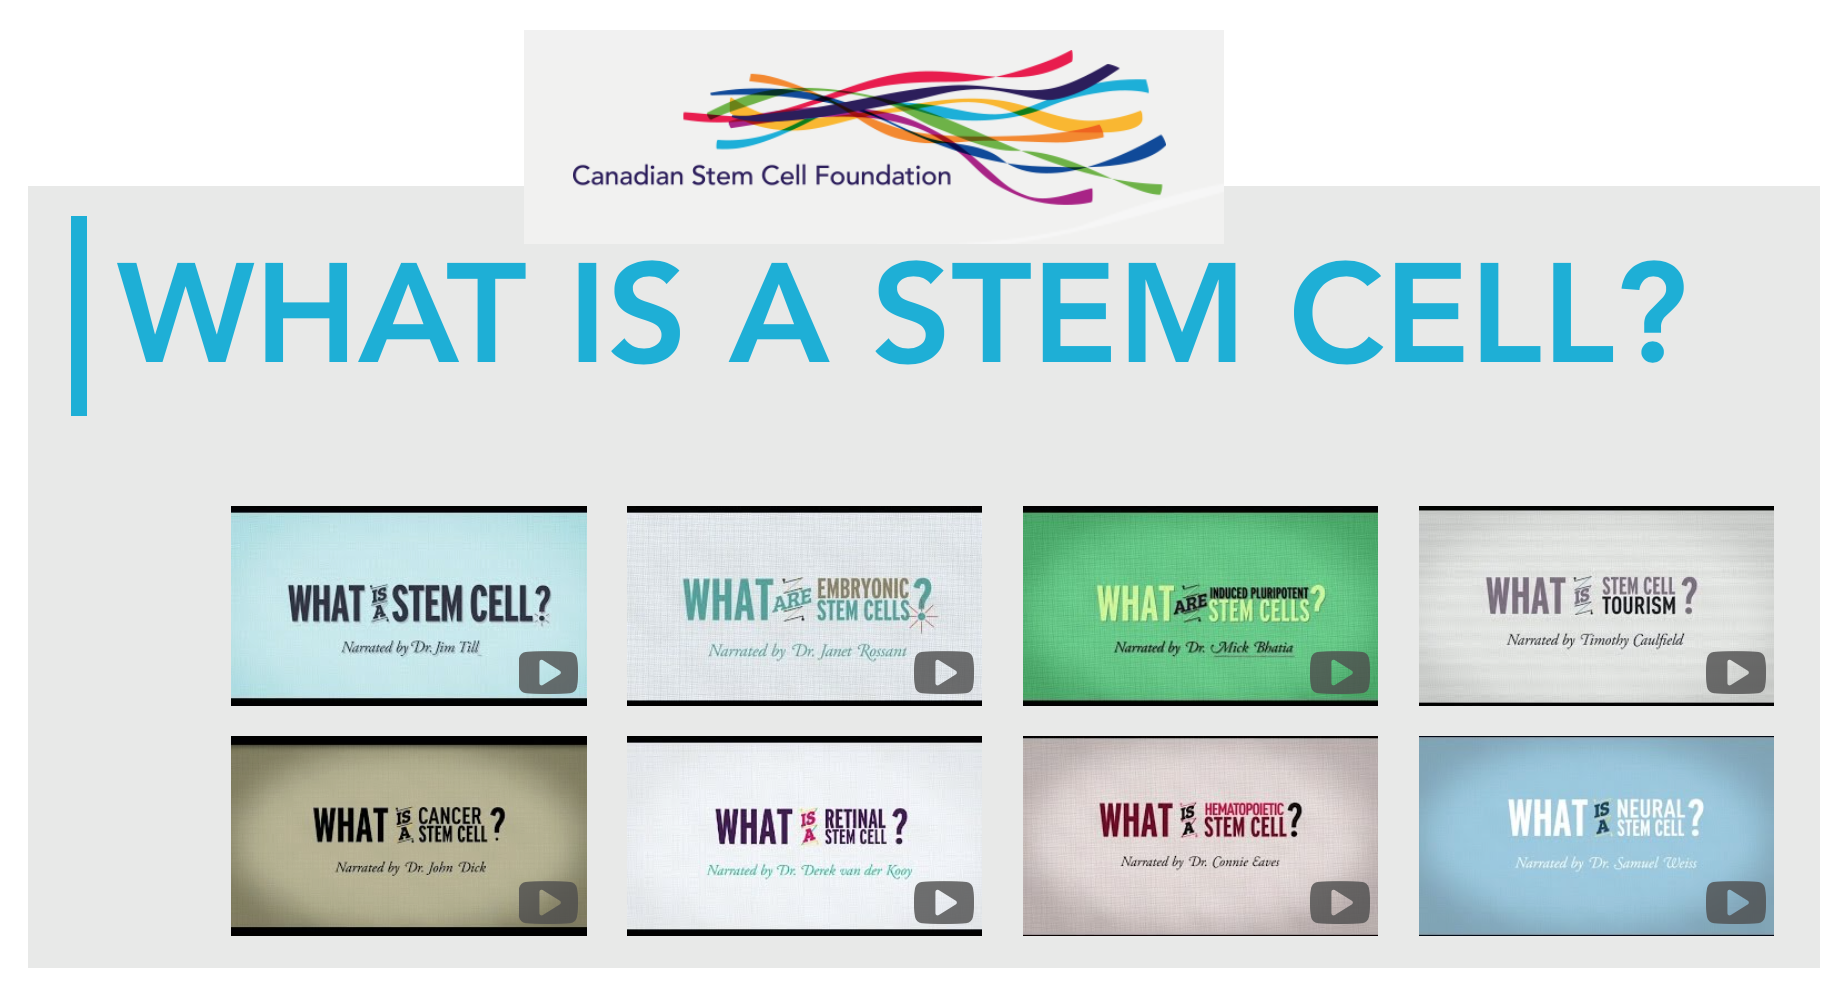 What is a Stem Cell? Canadian Stem Cell Foundation